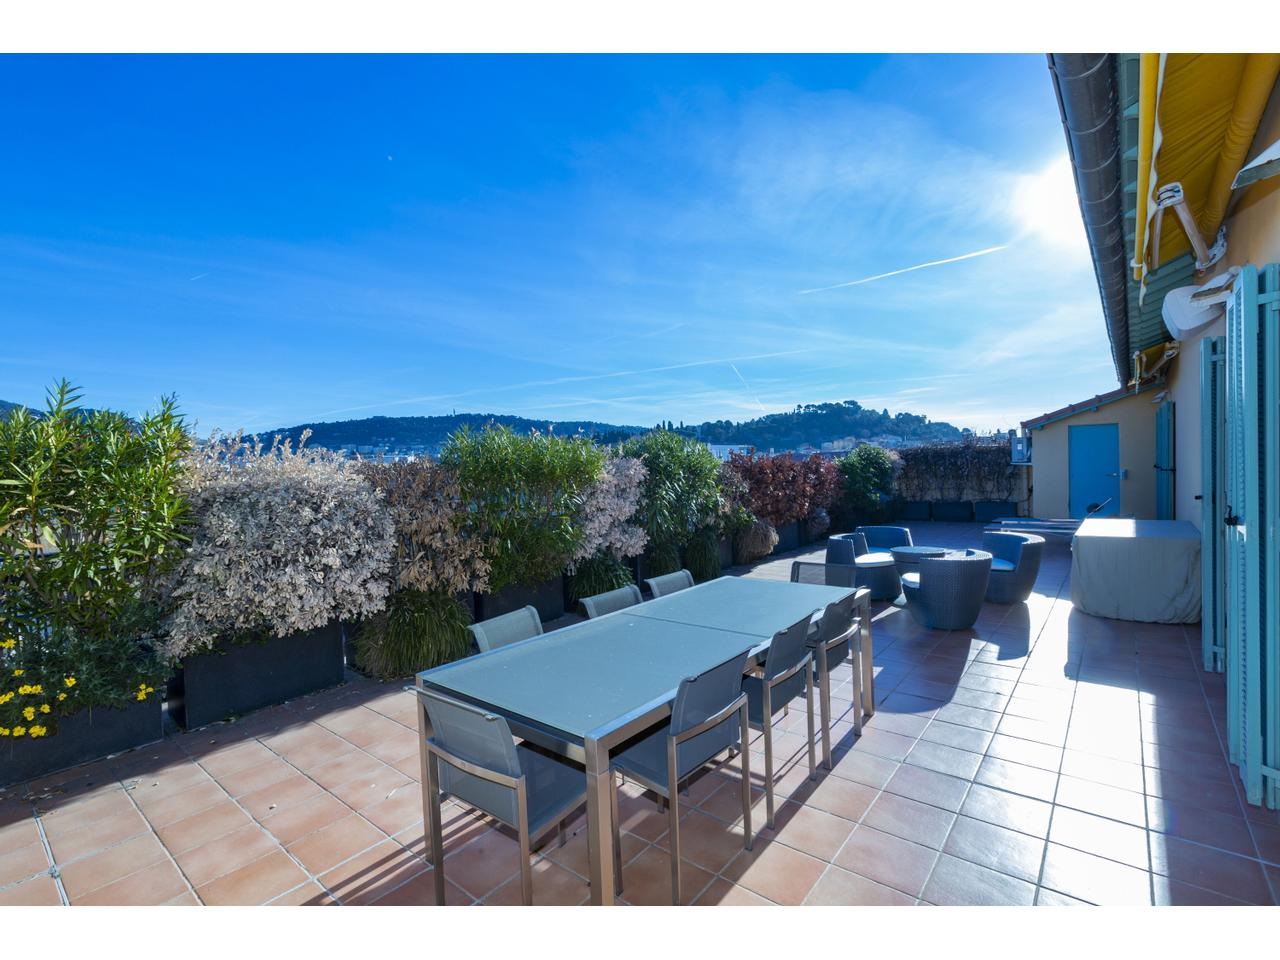 Appartement  4 Rooms 115m2  for sale